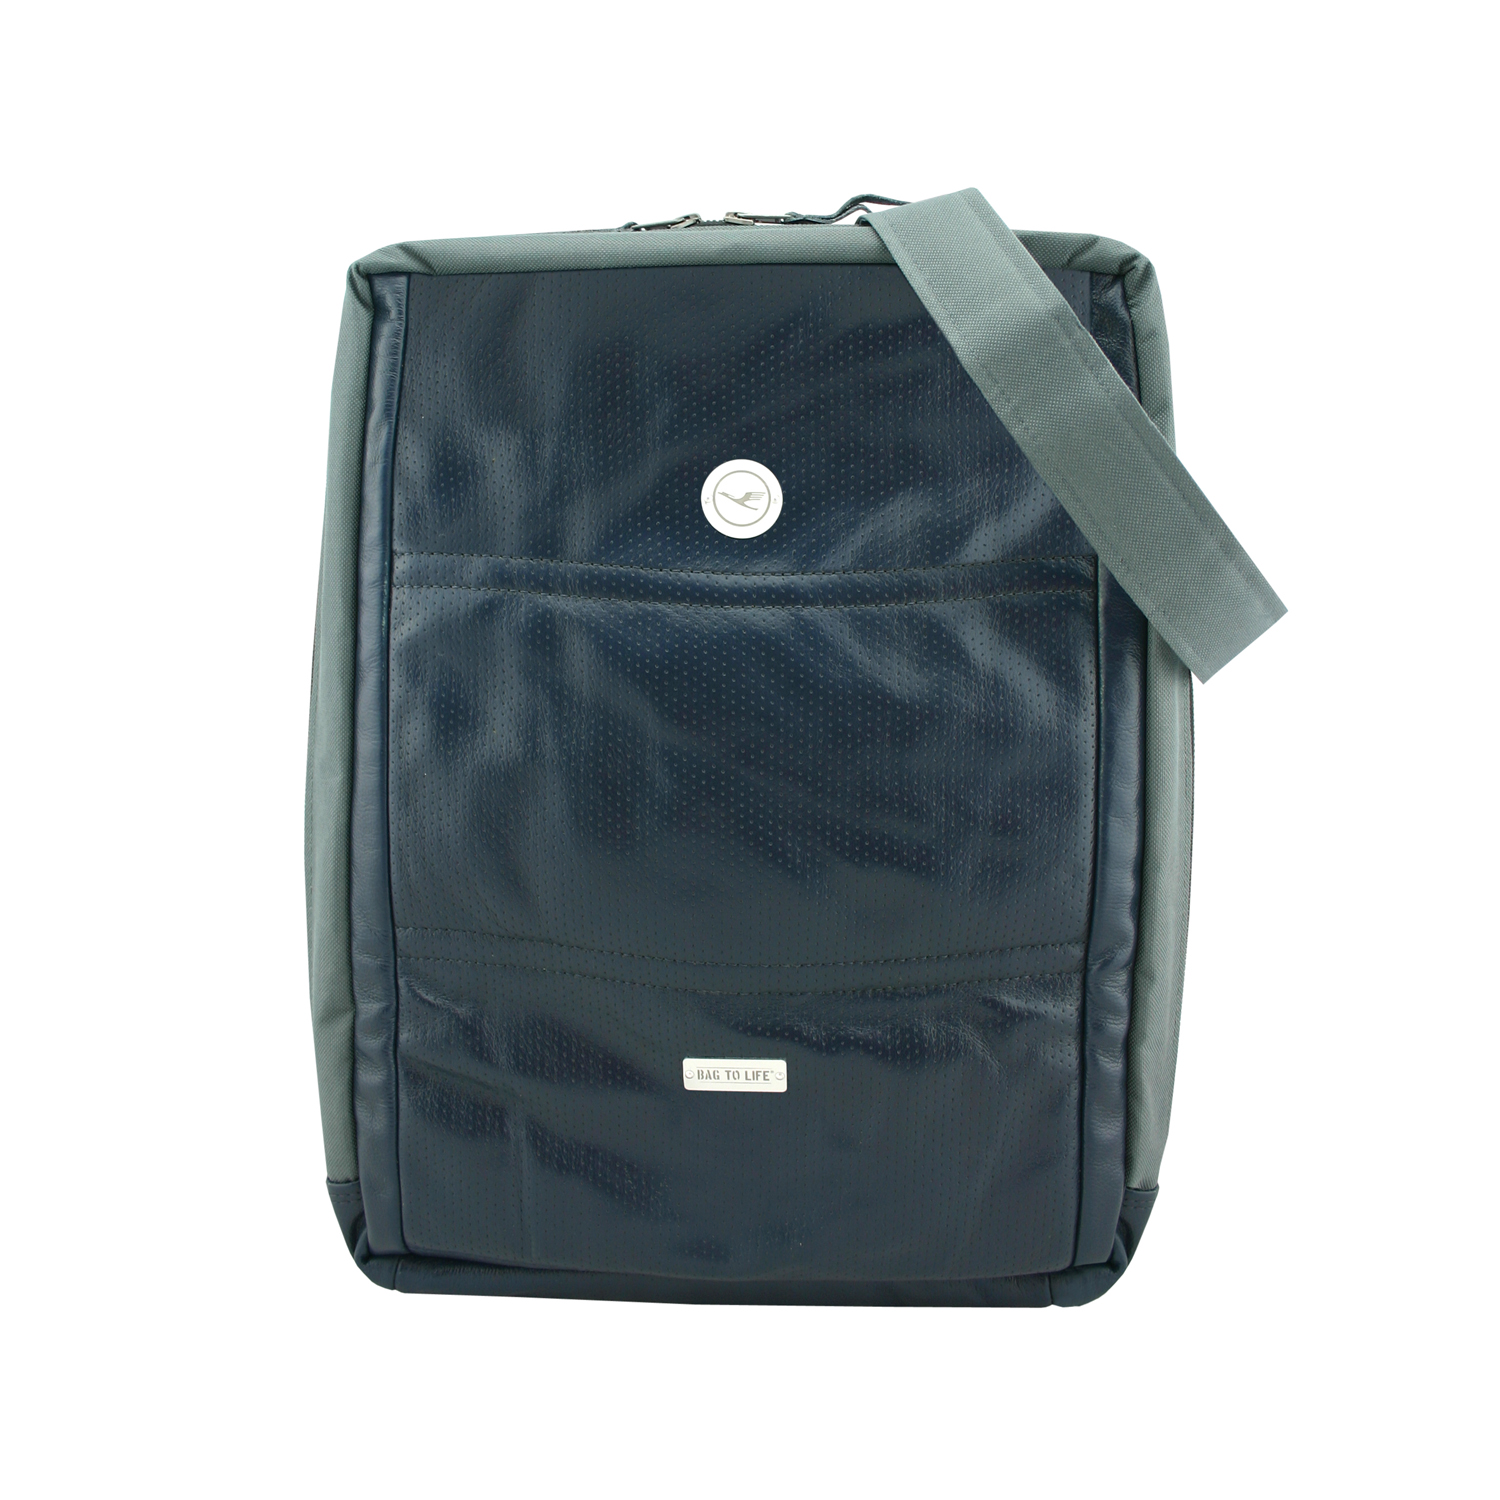 Business Class Messenger Bag